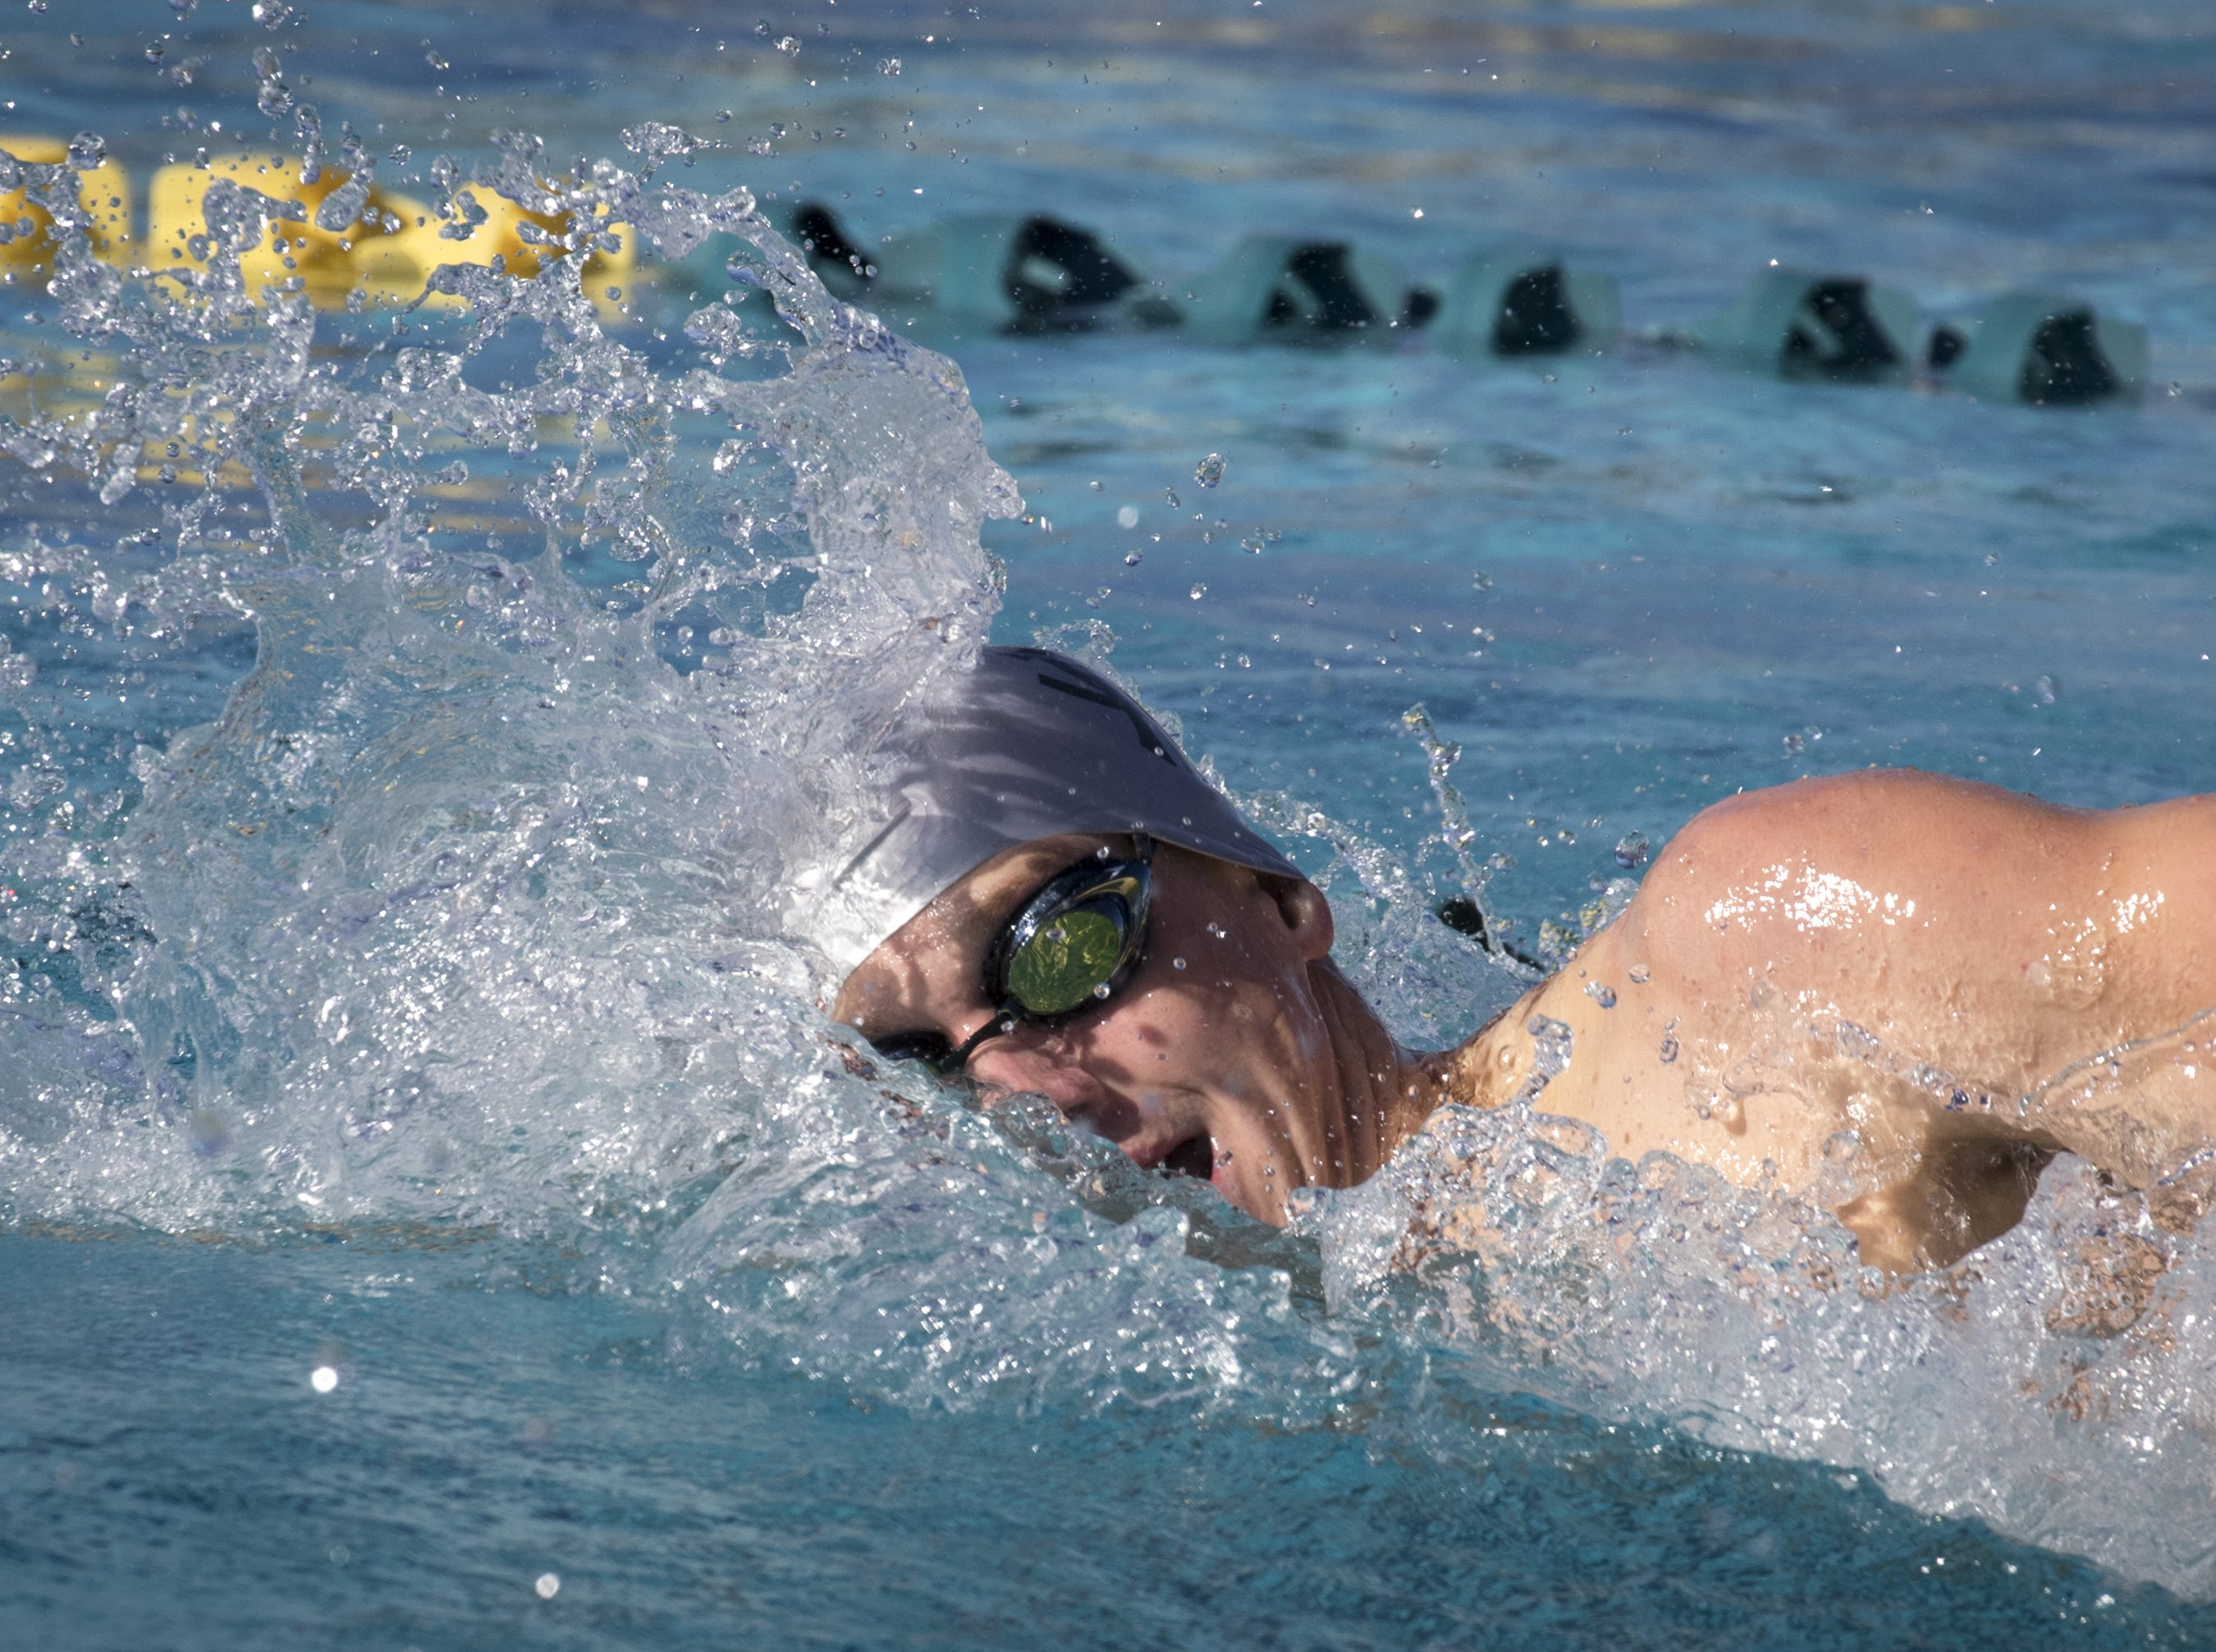 Scott Pekarske (Catalina Foothills) swims the 200 Freestyle, November 3, 2018, during the AIA Division II state swimming finals at the Skyline Aquatic Center, Mesa. Pekarske won the event.